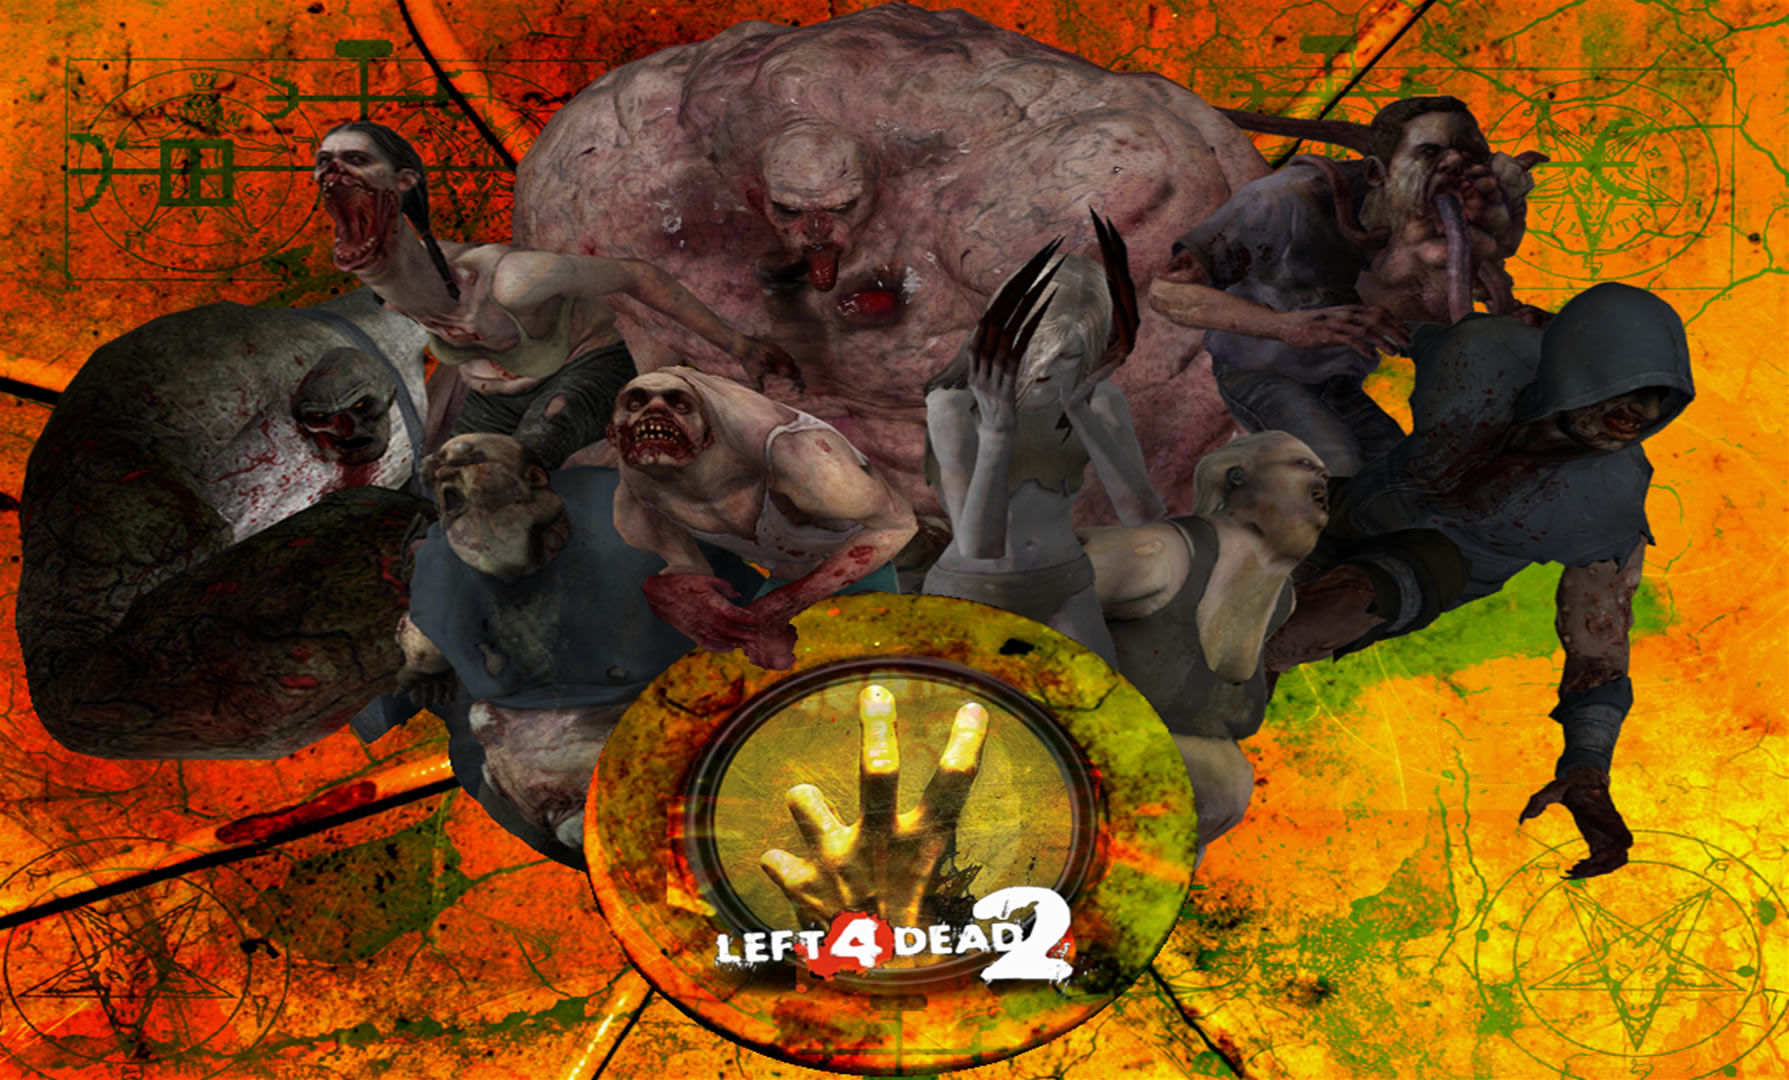 Left 4 Dead 2 Special Infected Wallpaper By Neon953 On Deviantart